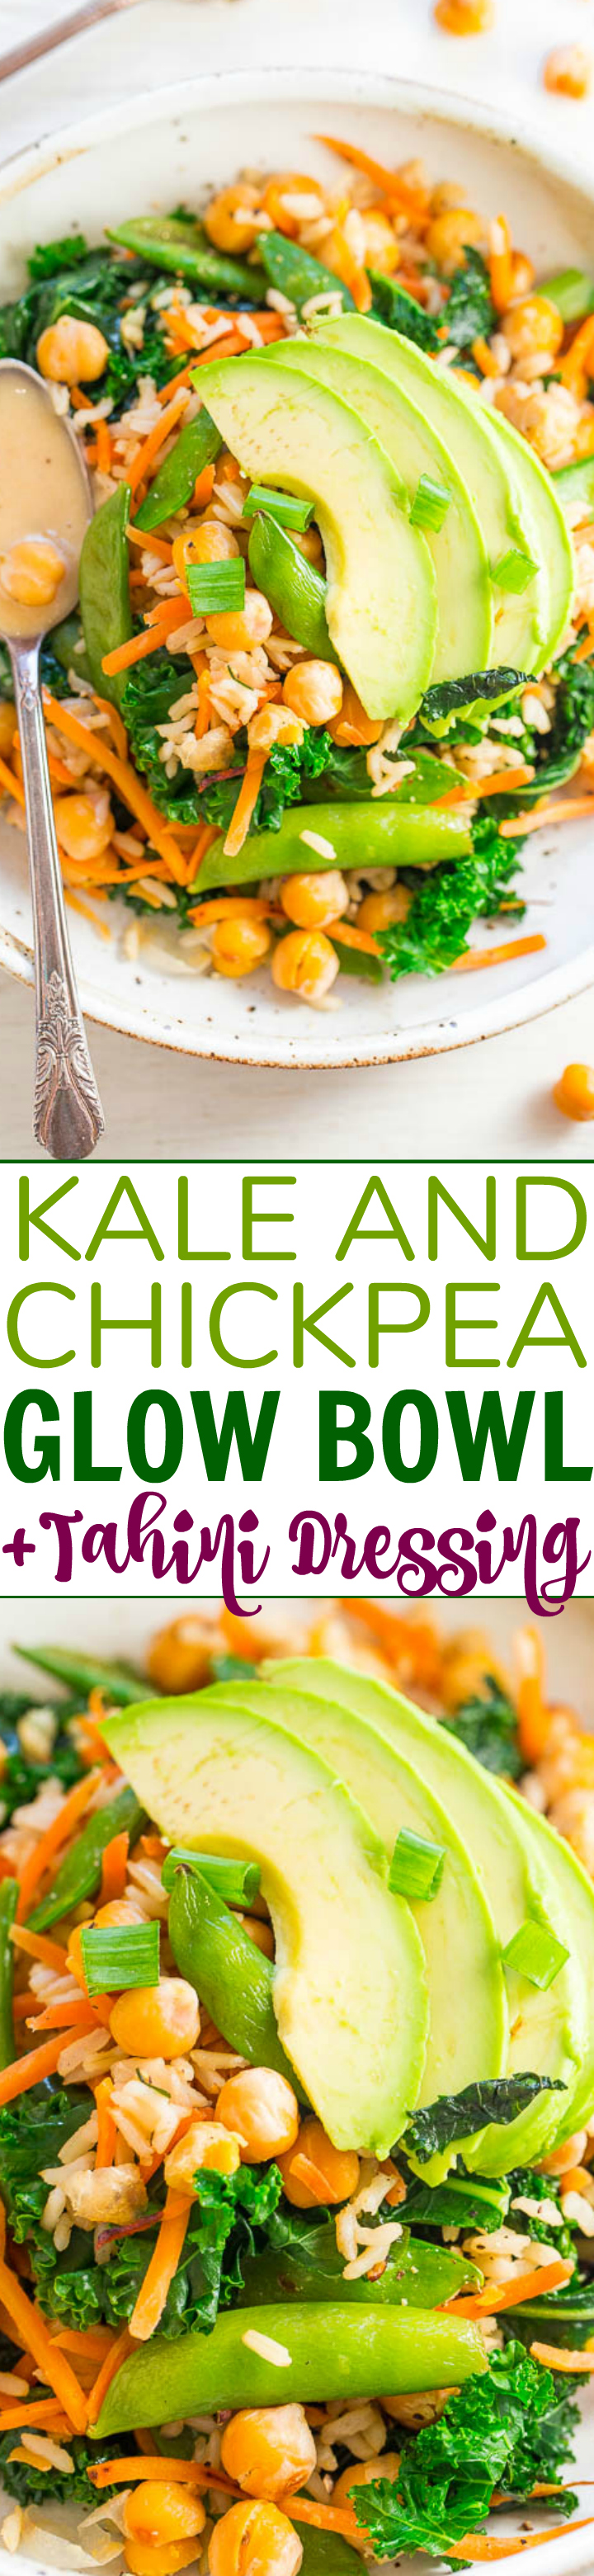 Chickpea and Kale Glow Bowl with Dreamy Tahini Dressing – FAST, EASY, accidentally vegan and gluten-free!! Keeps you satisfied and GLOWING from the inside out! The zippy dressing lives up to its DREAMY name!!